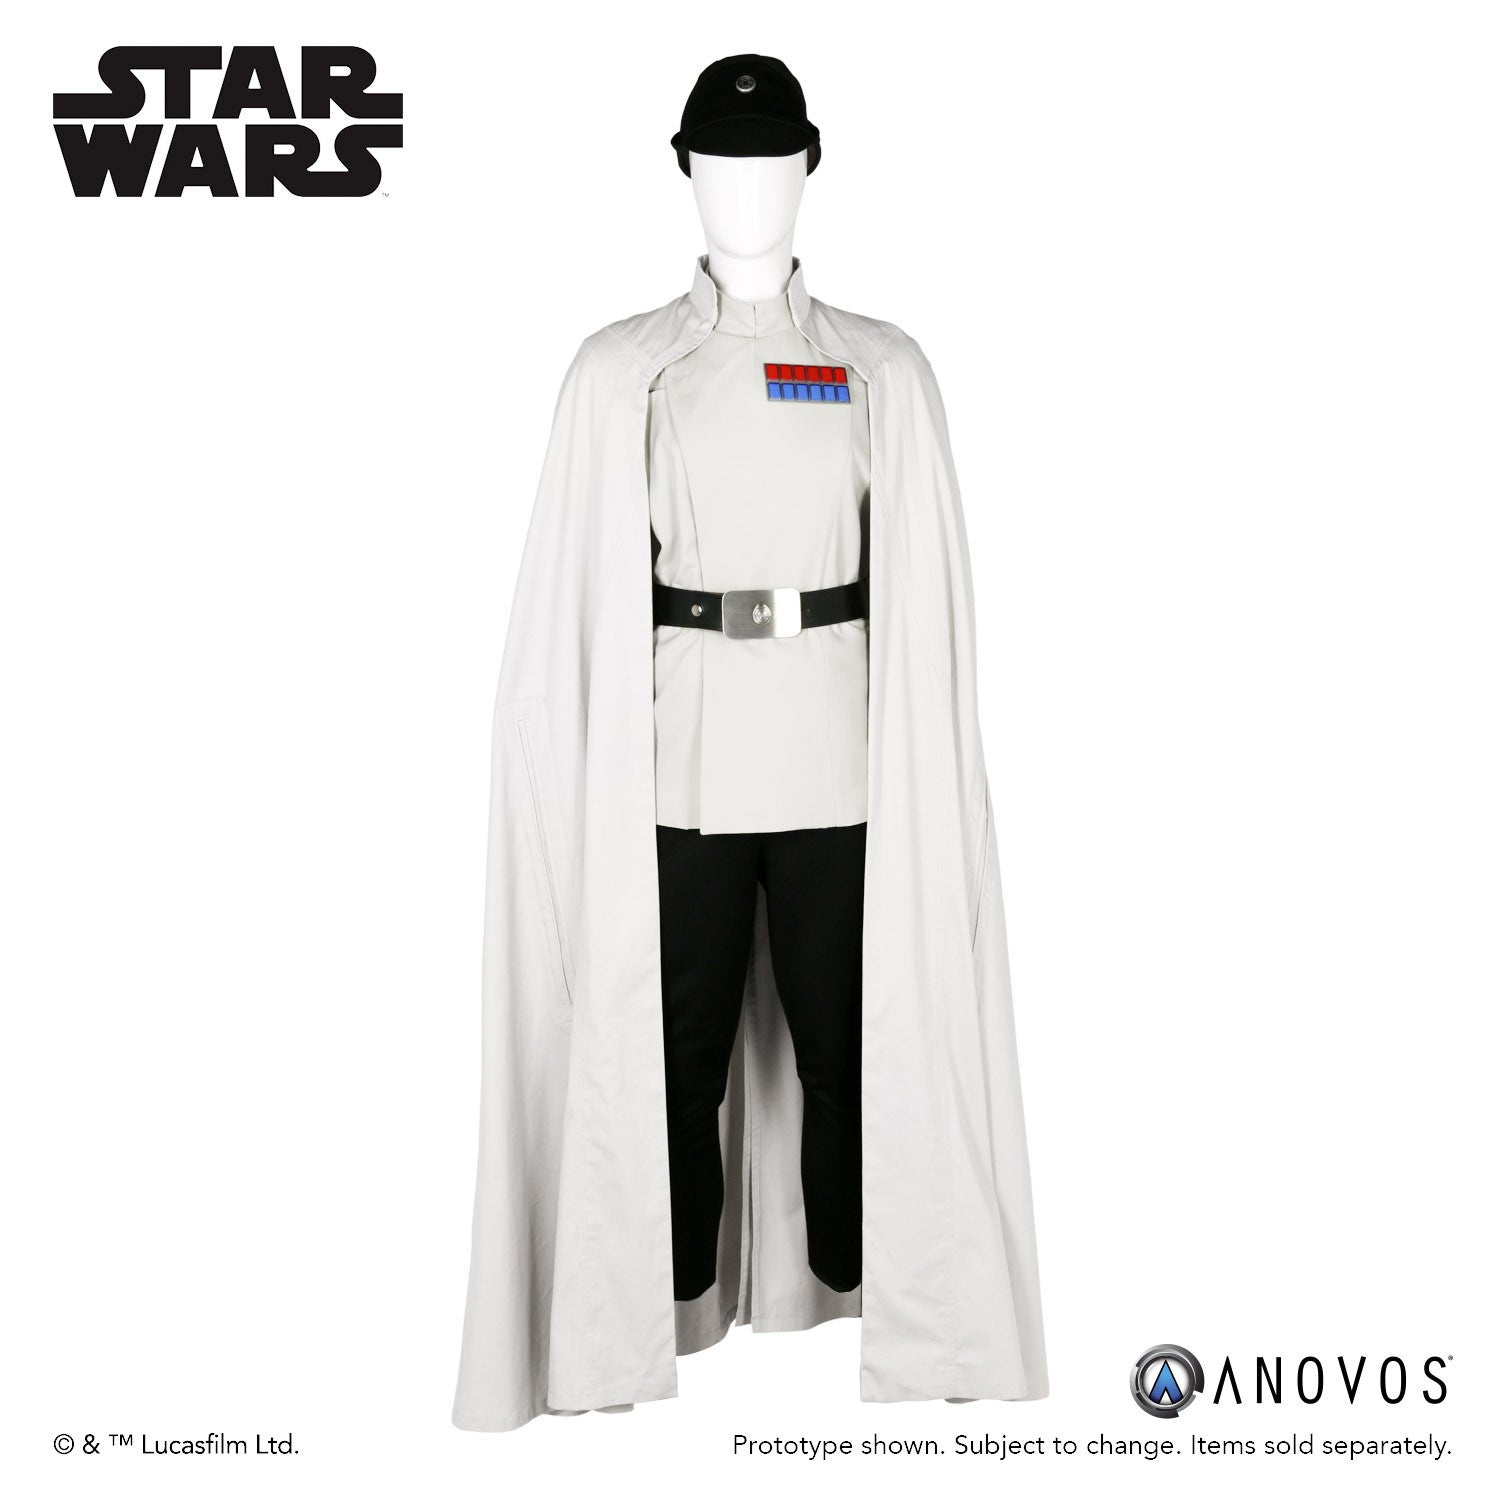 Star Wars Rogue One Director Krennic Cosplay Costume Made custom made